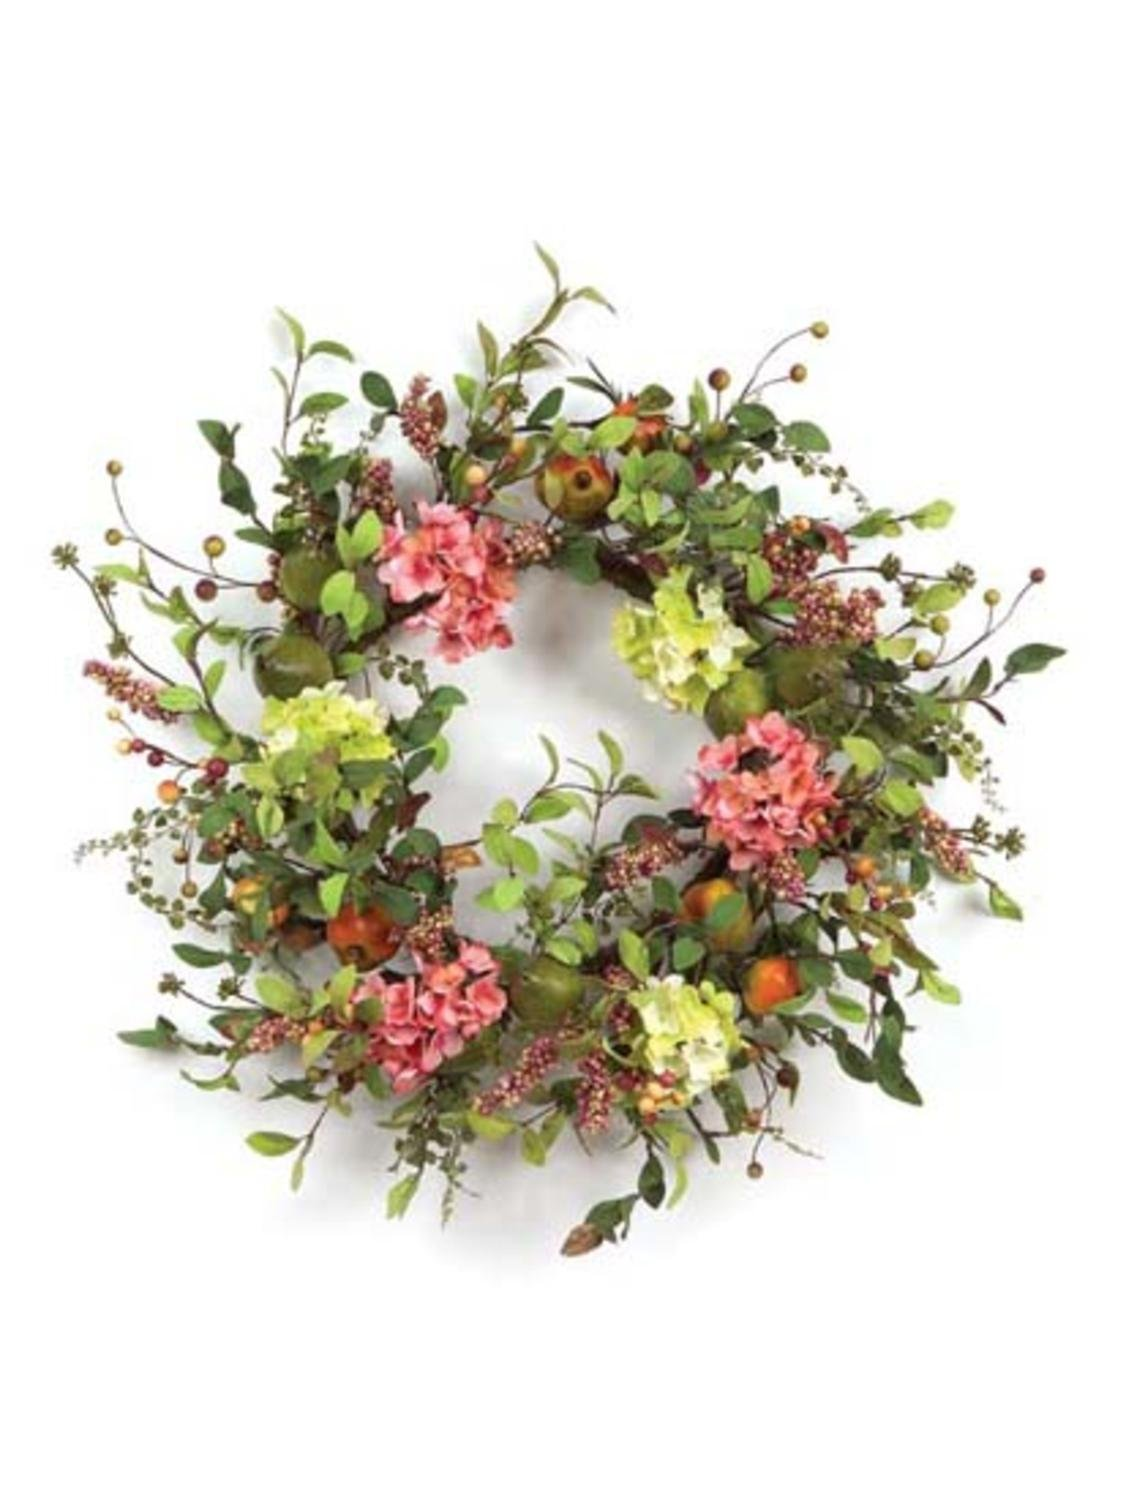 Pack of 2 Coral Blossom Artificial Pear, Hydrangea & Berry Floral Wreaths 26''